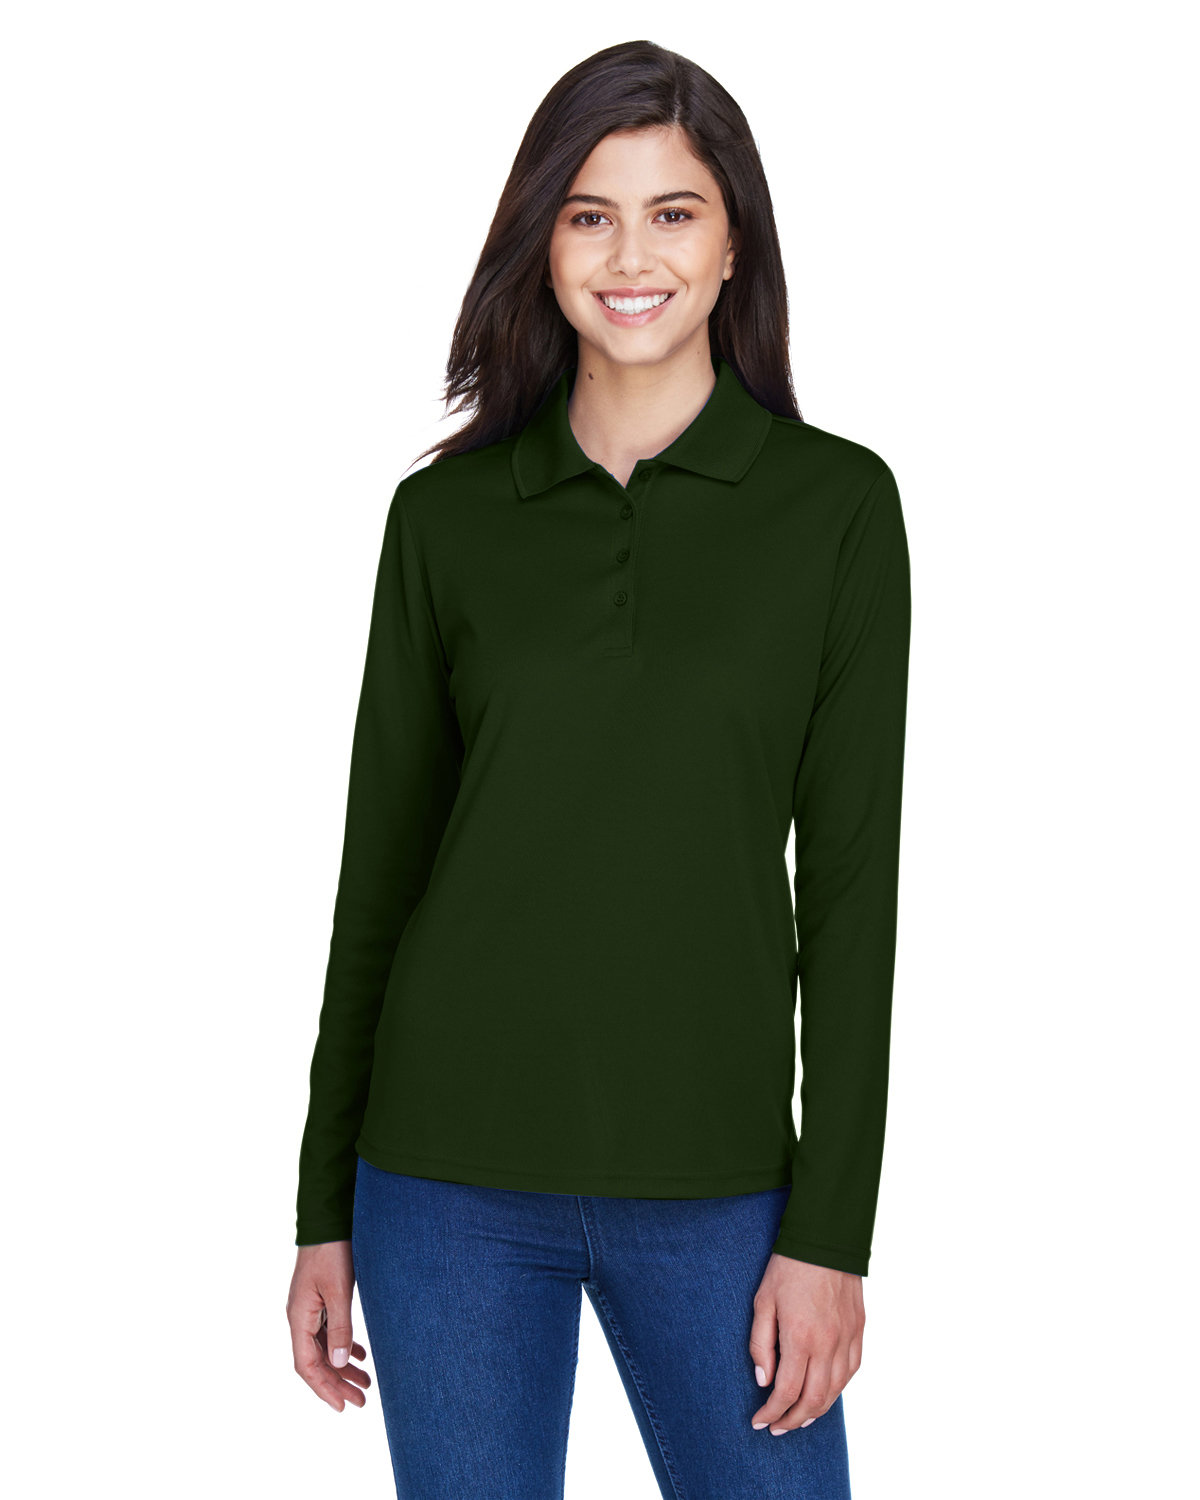 Core 365 Ladies' Pinnacle Performance Long-Sleeve Piqué Polo FOREST